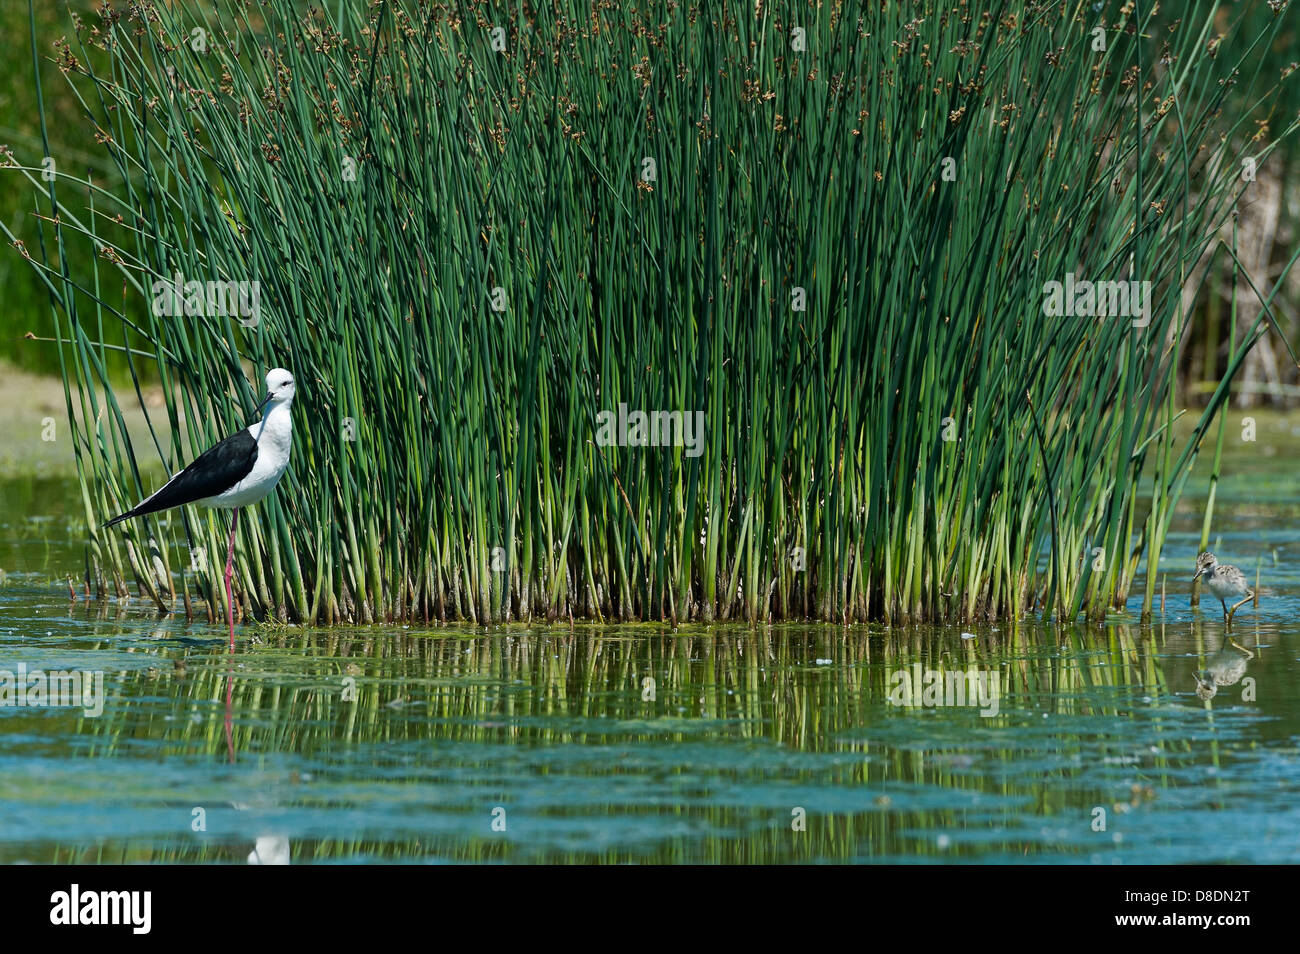 a male Black-winged Stilt with a chick in a marsh - Stock Image